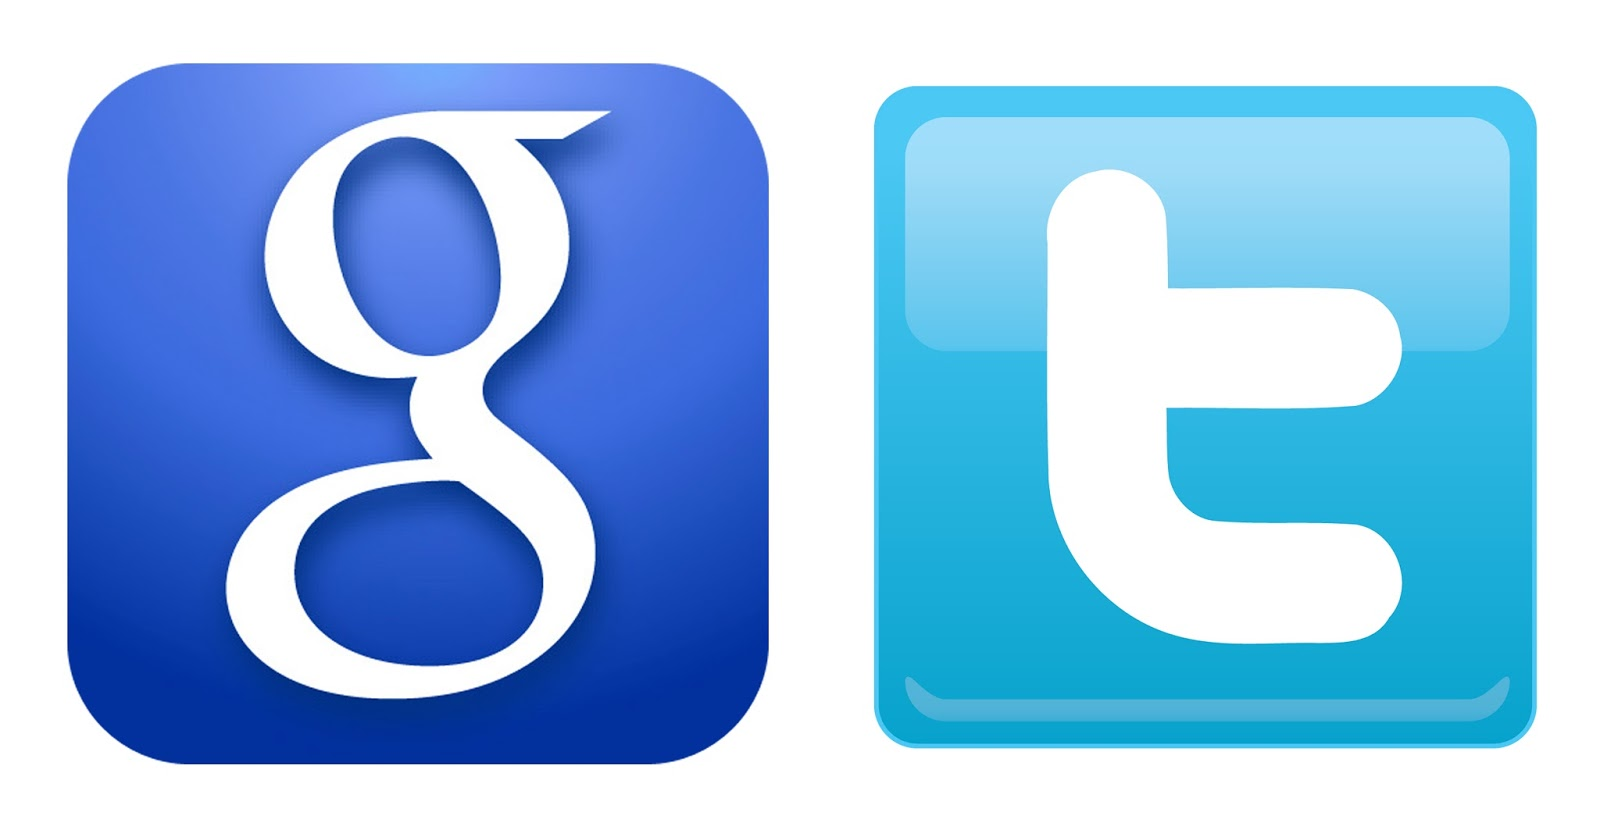 Google Announces Experimenting with Twitter Integration in Web Search Results 1